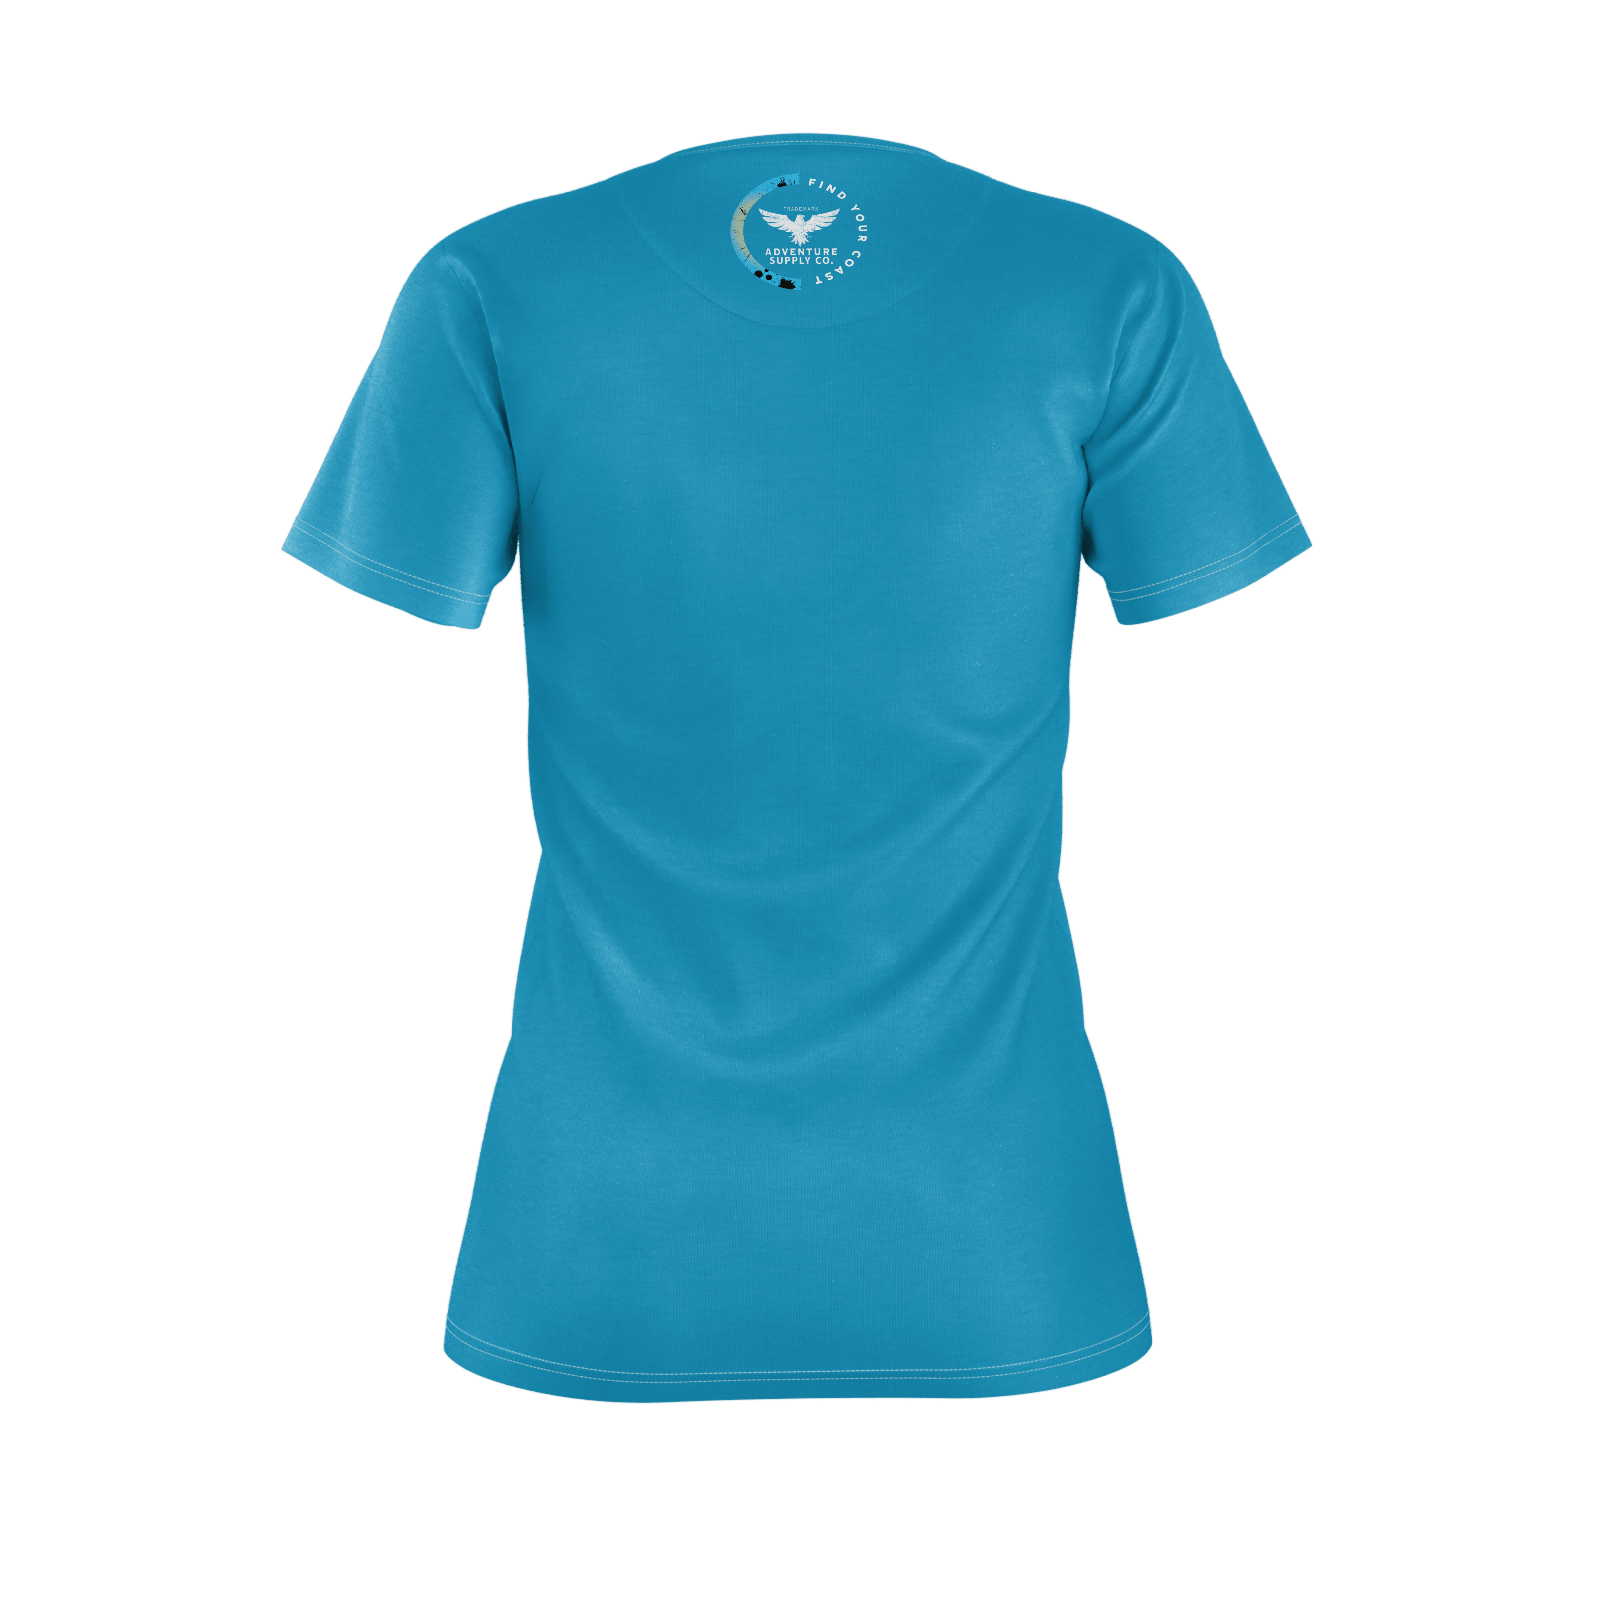 Women's Find Your Coast Twin Palms Recycled rPET Knit Tee Shirt - Find Your Coast Supply Co.